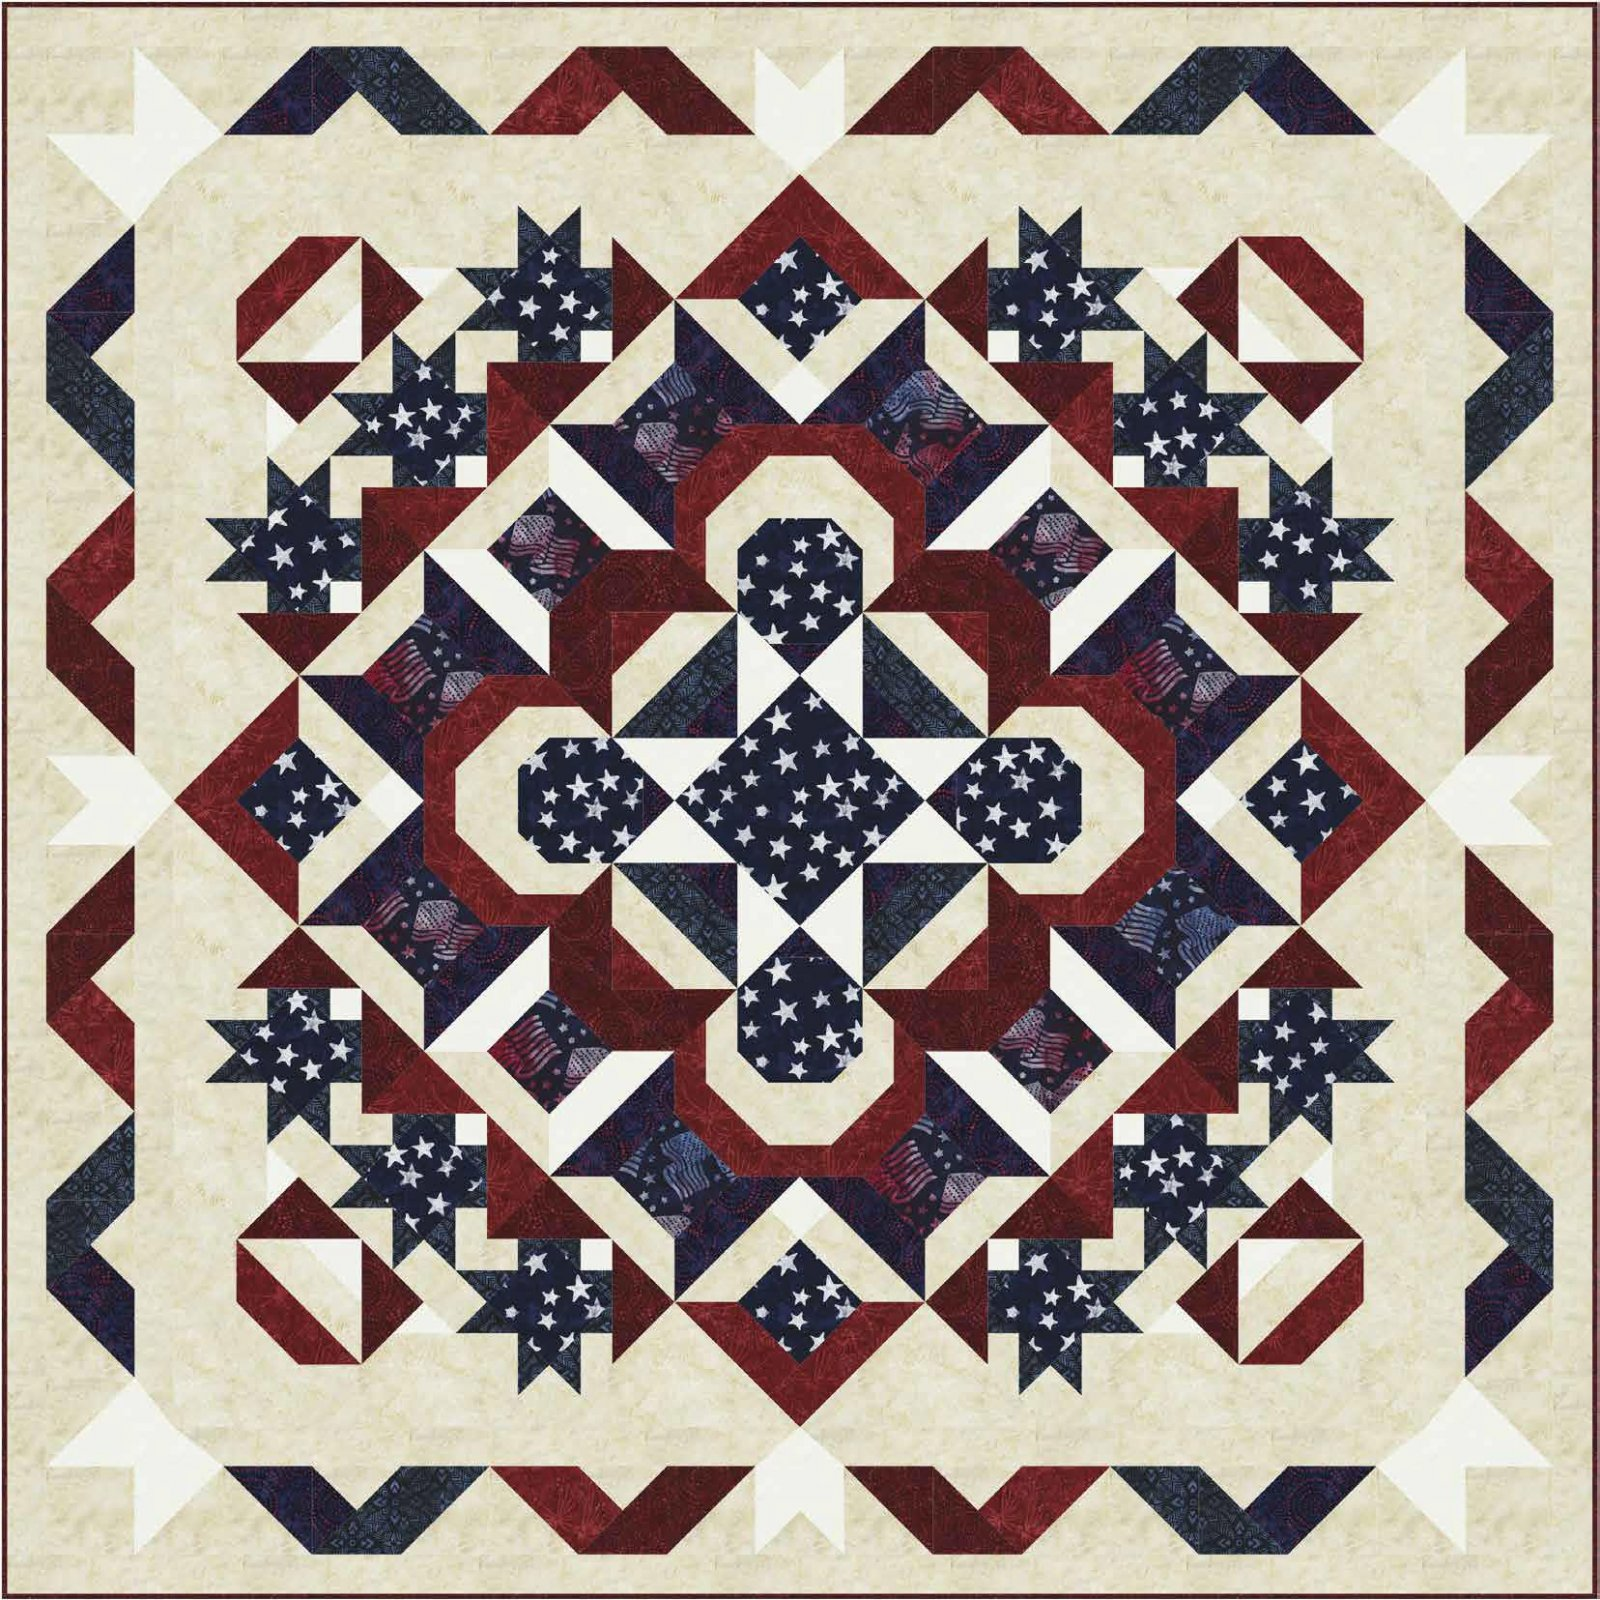 Stellar Starburst Tonga Patriot Batik Quilt Kit